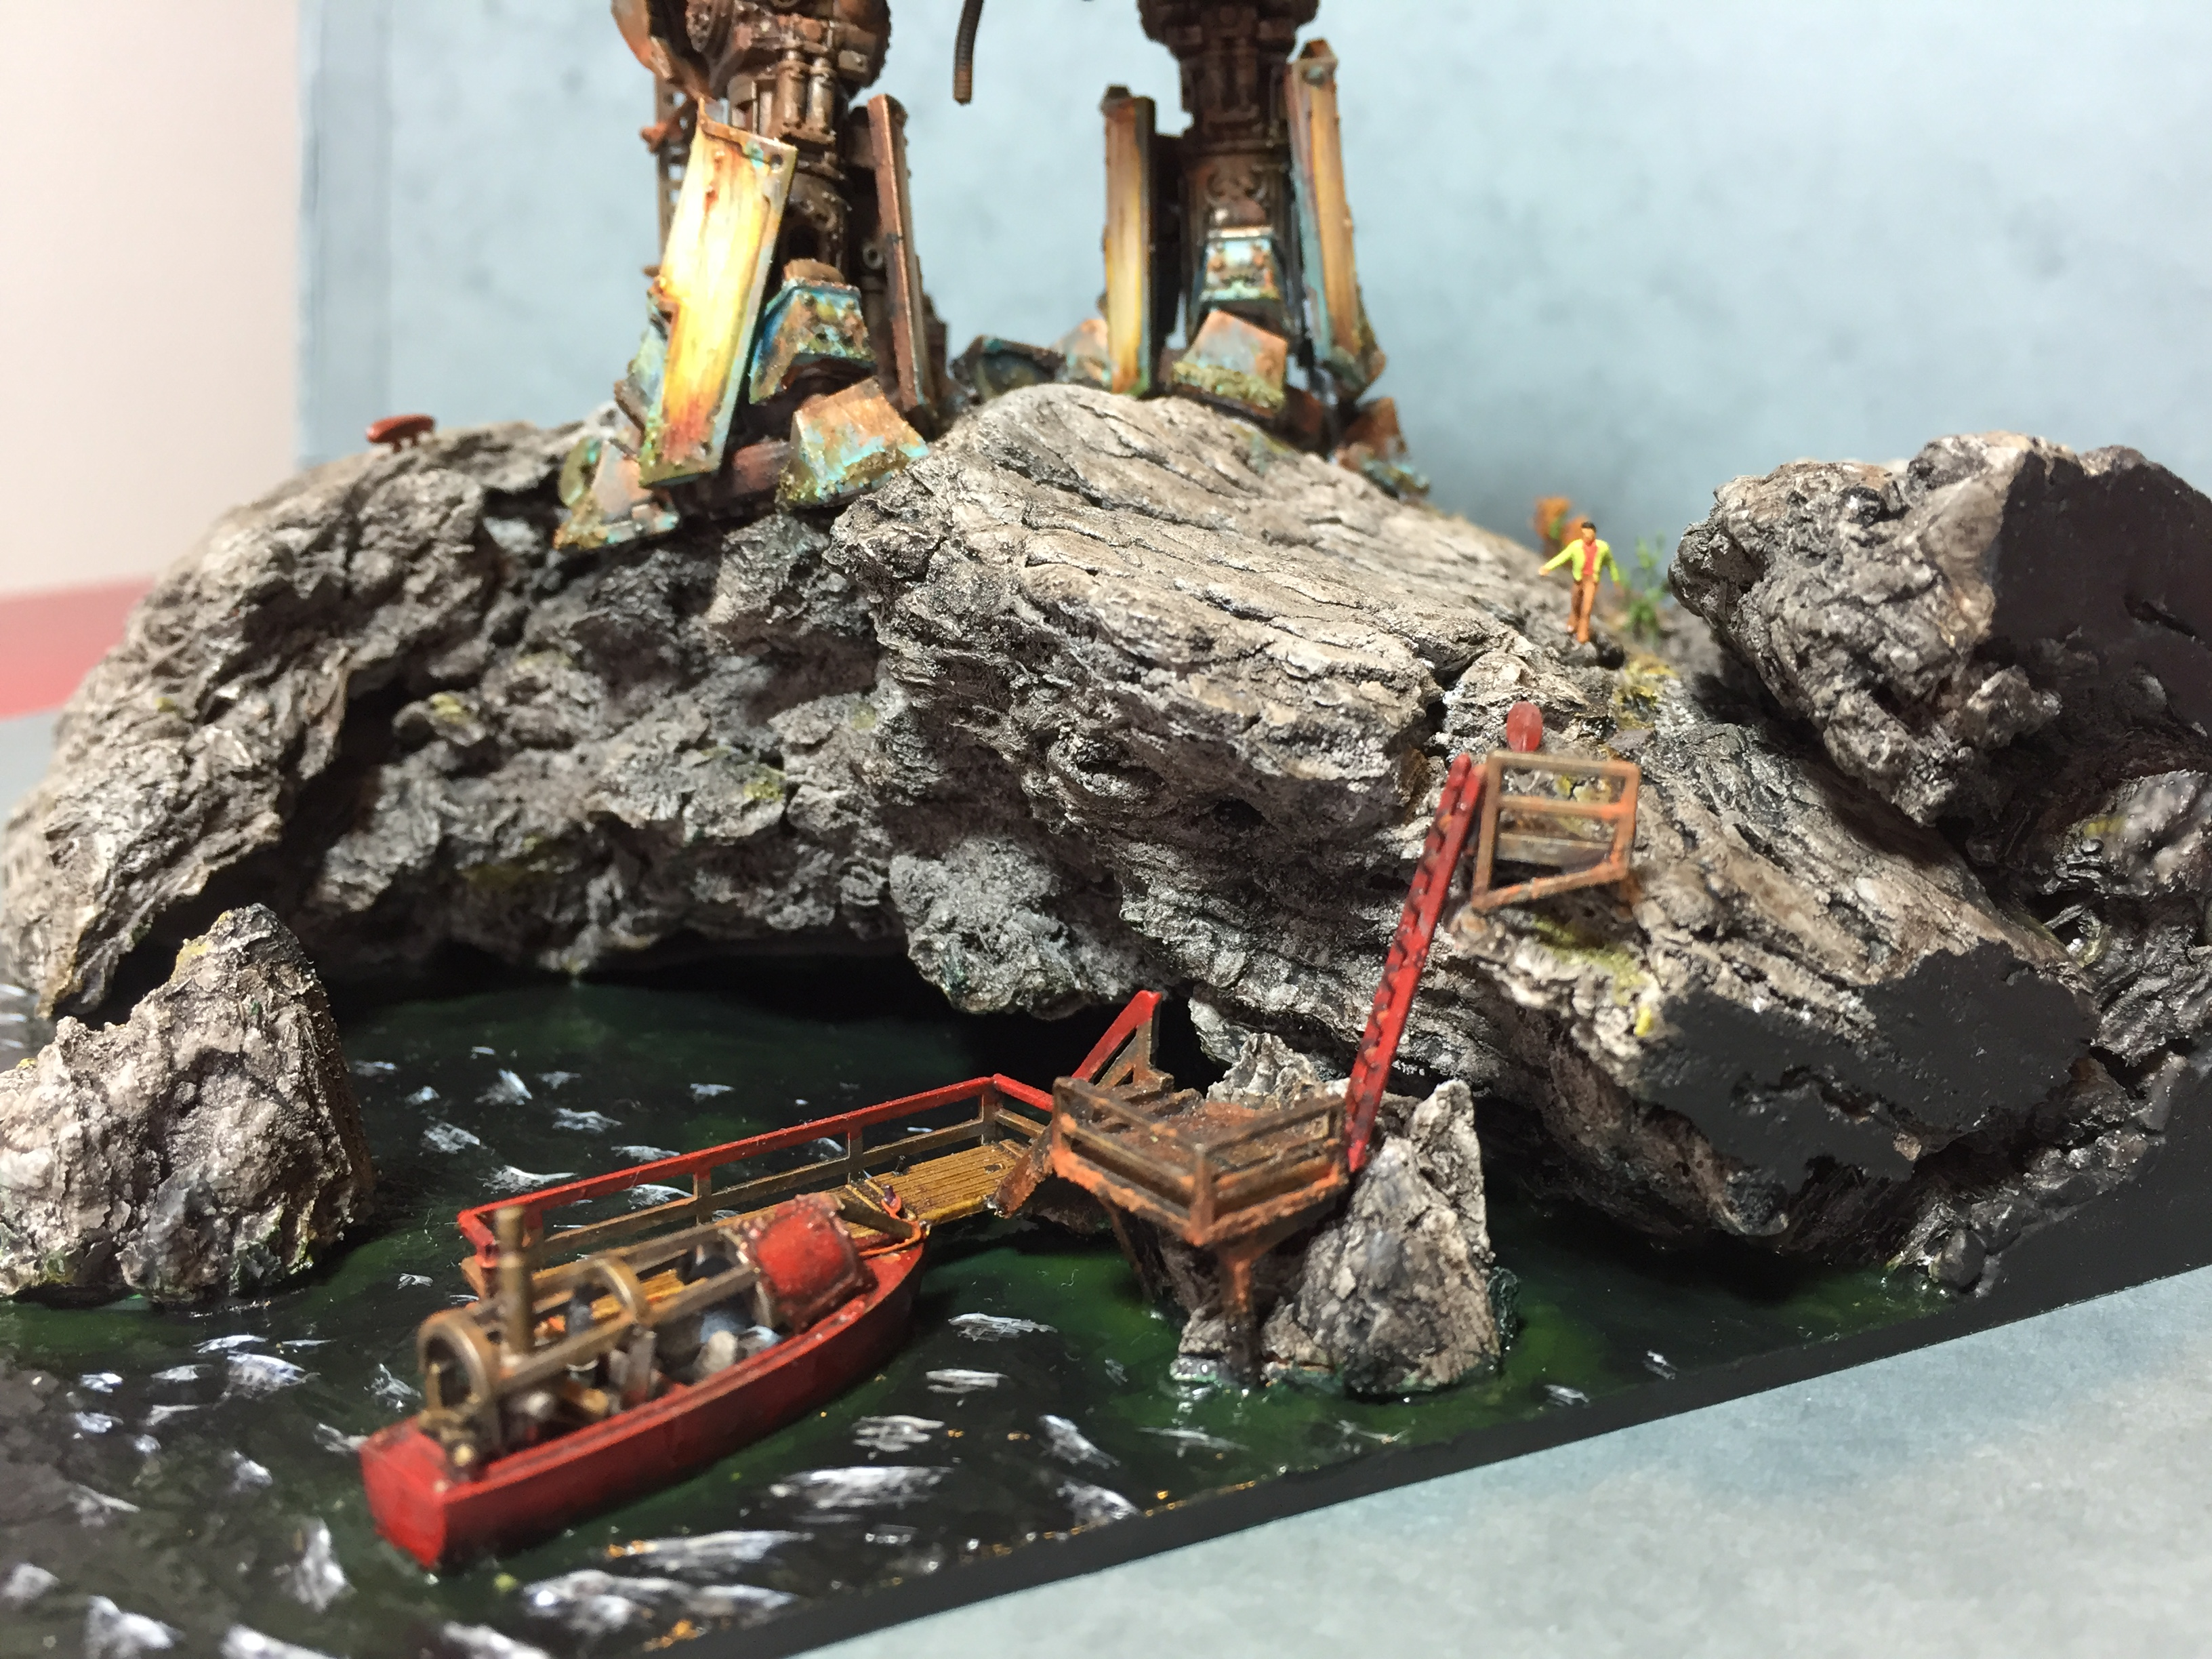 The Lighthouse - Warhammer 40k diorama of a Reaver Titan.